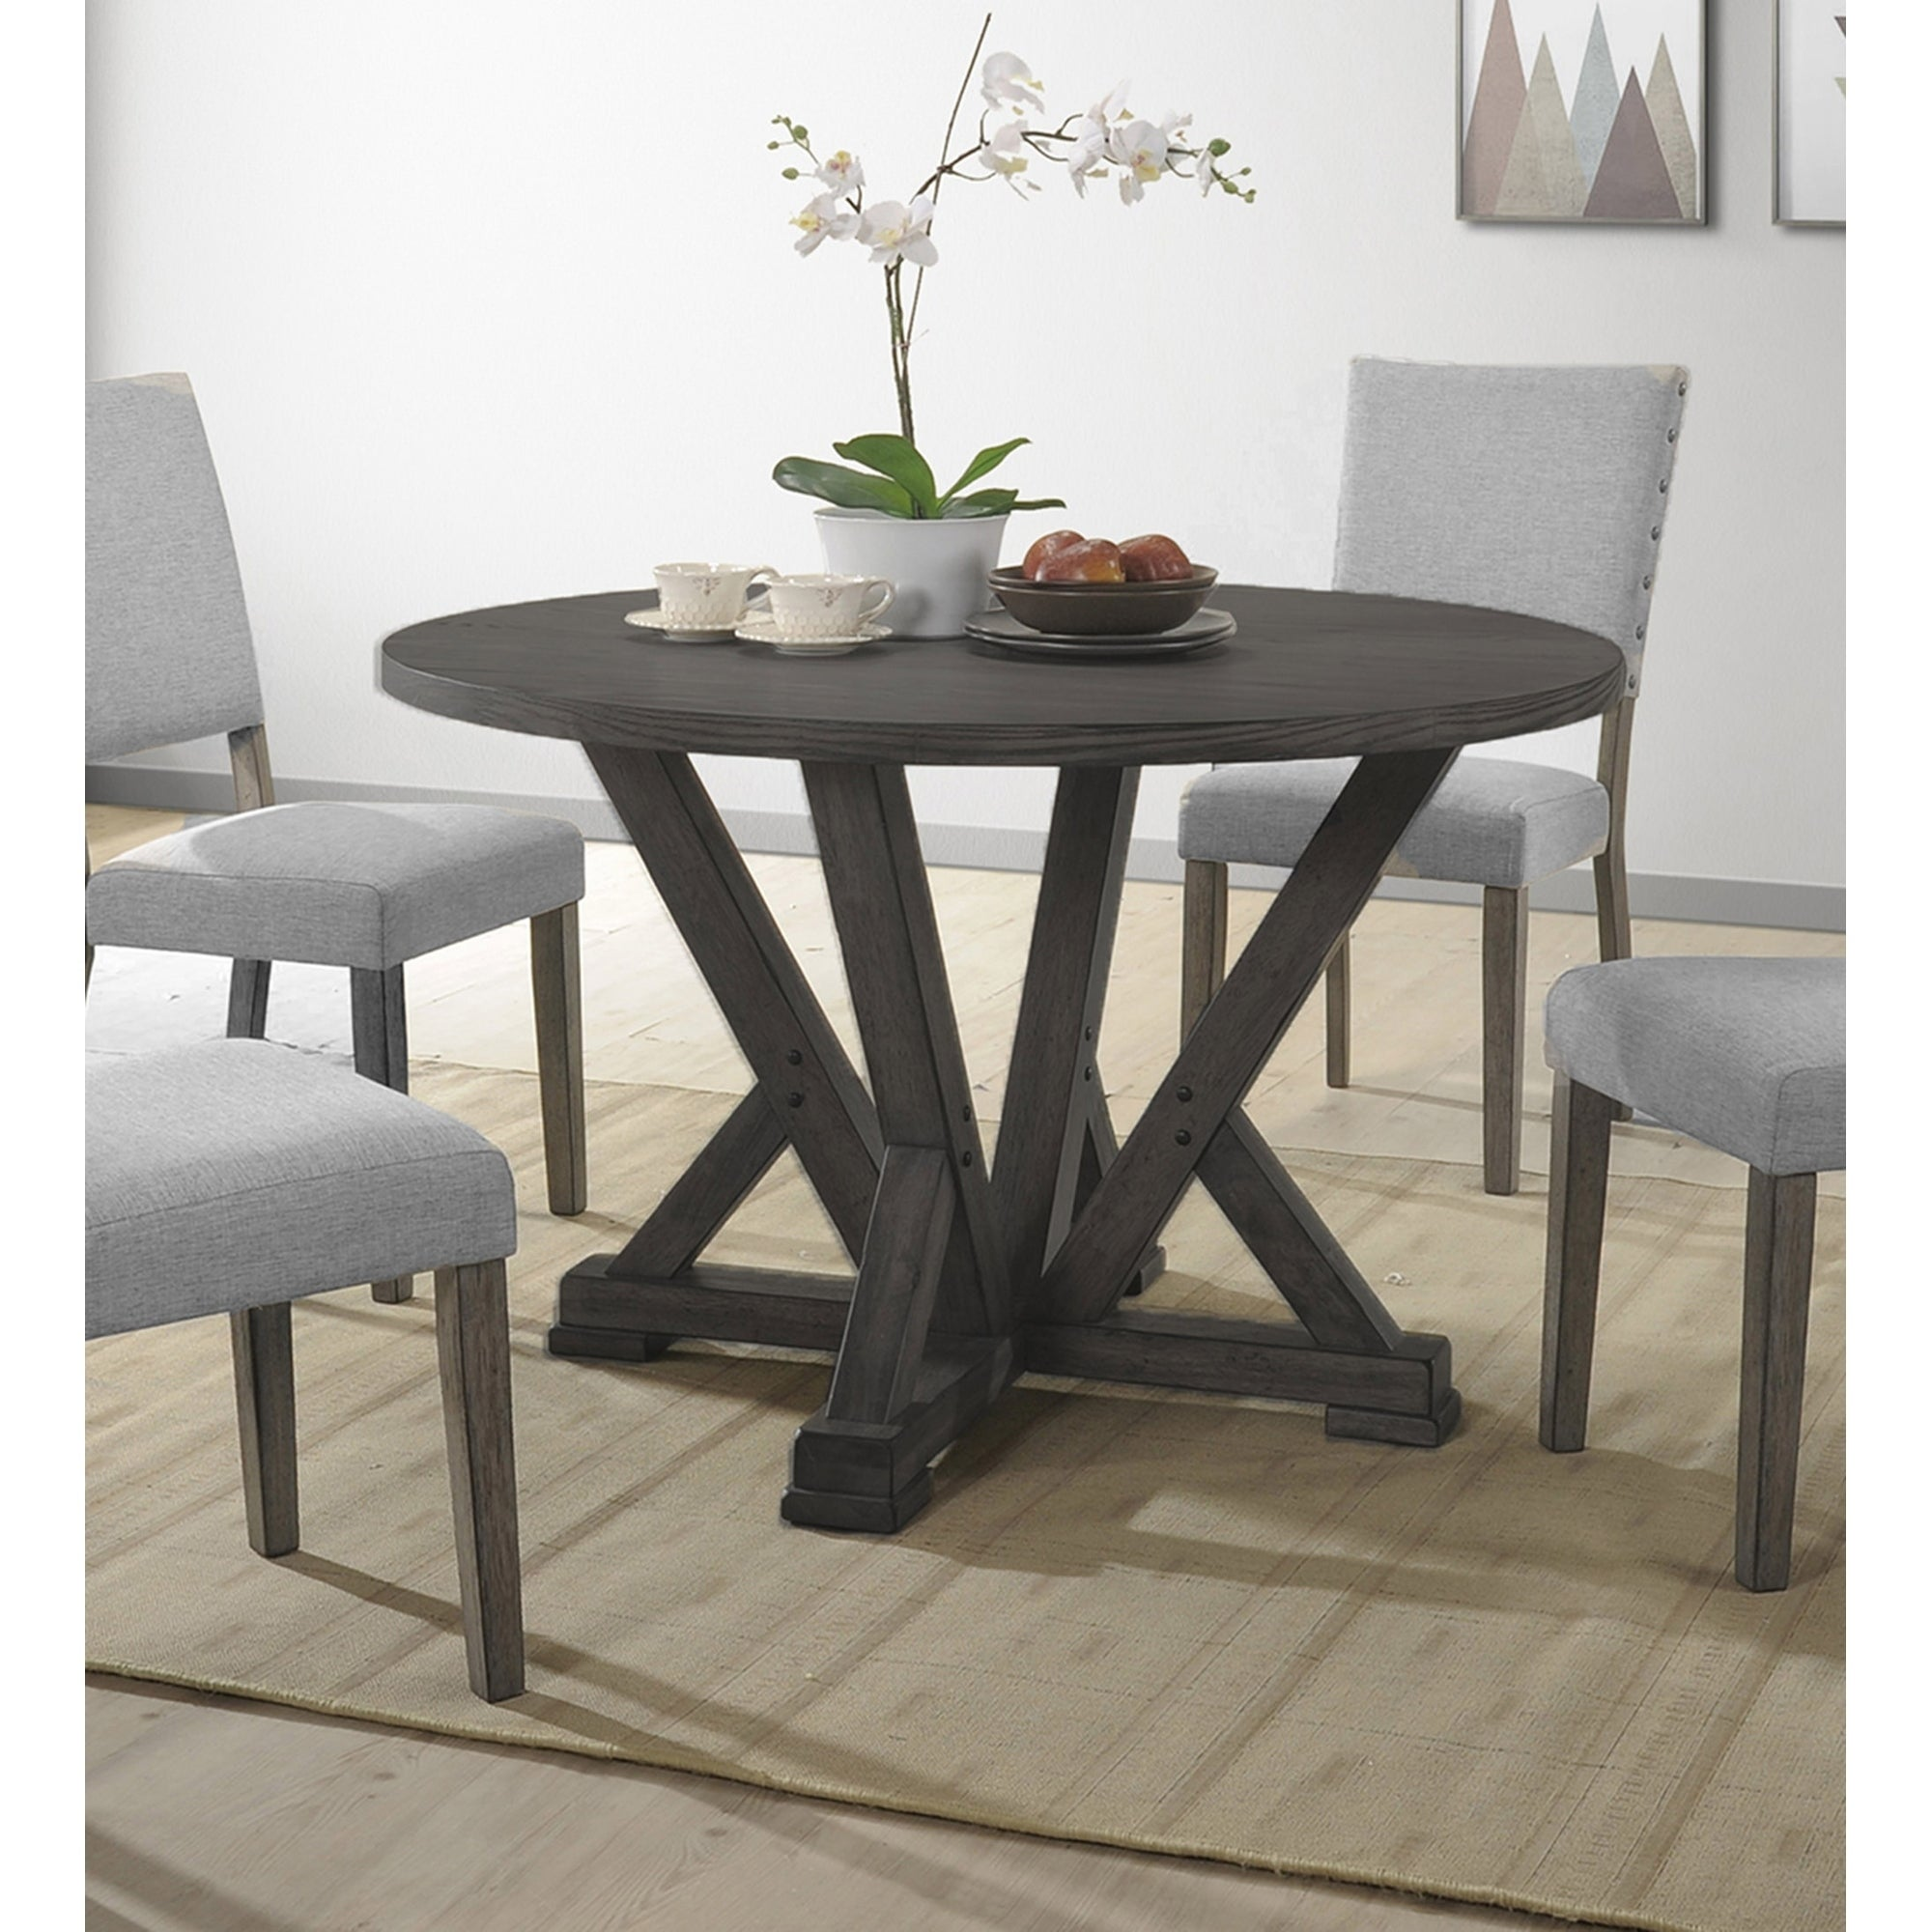 Shop Best Master Furniture Antique Grey Round Dining Table - Free Shipping Today - Overstock - 20970365 & Shop Best Master Furniture Antique Grey Round Dining Table - Free ...